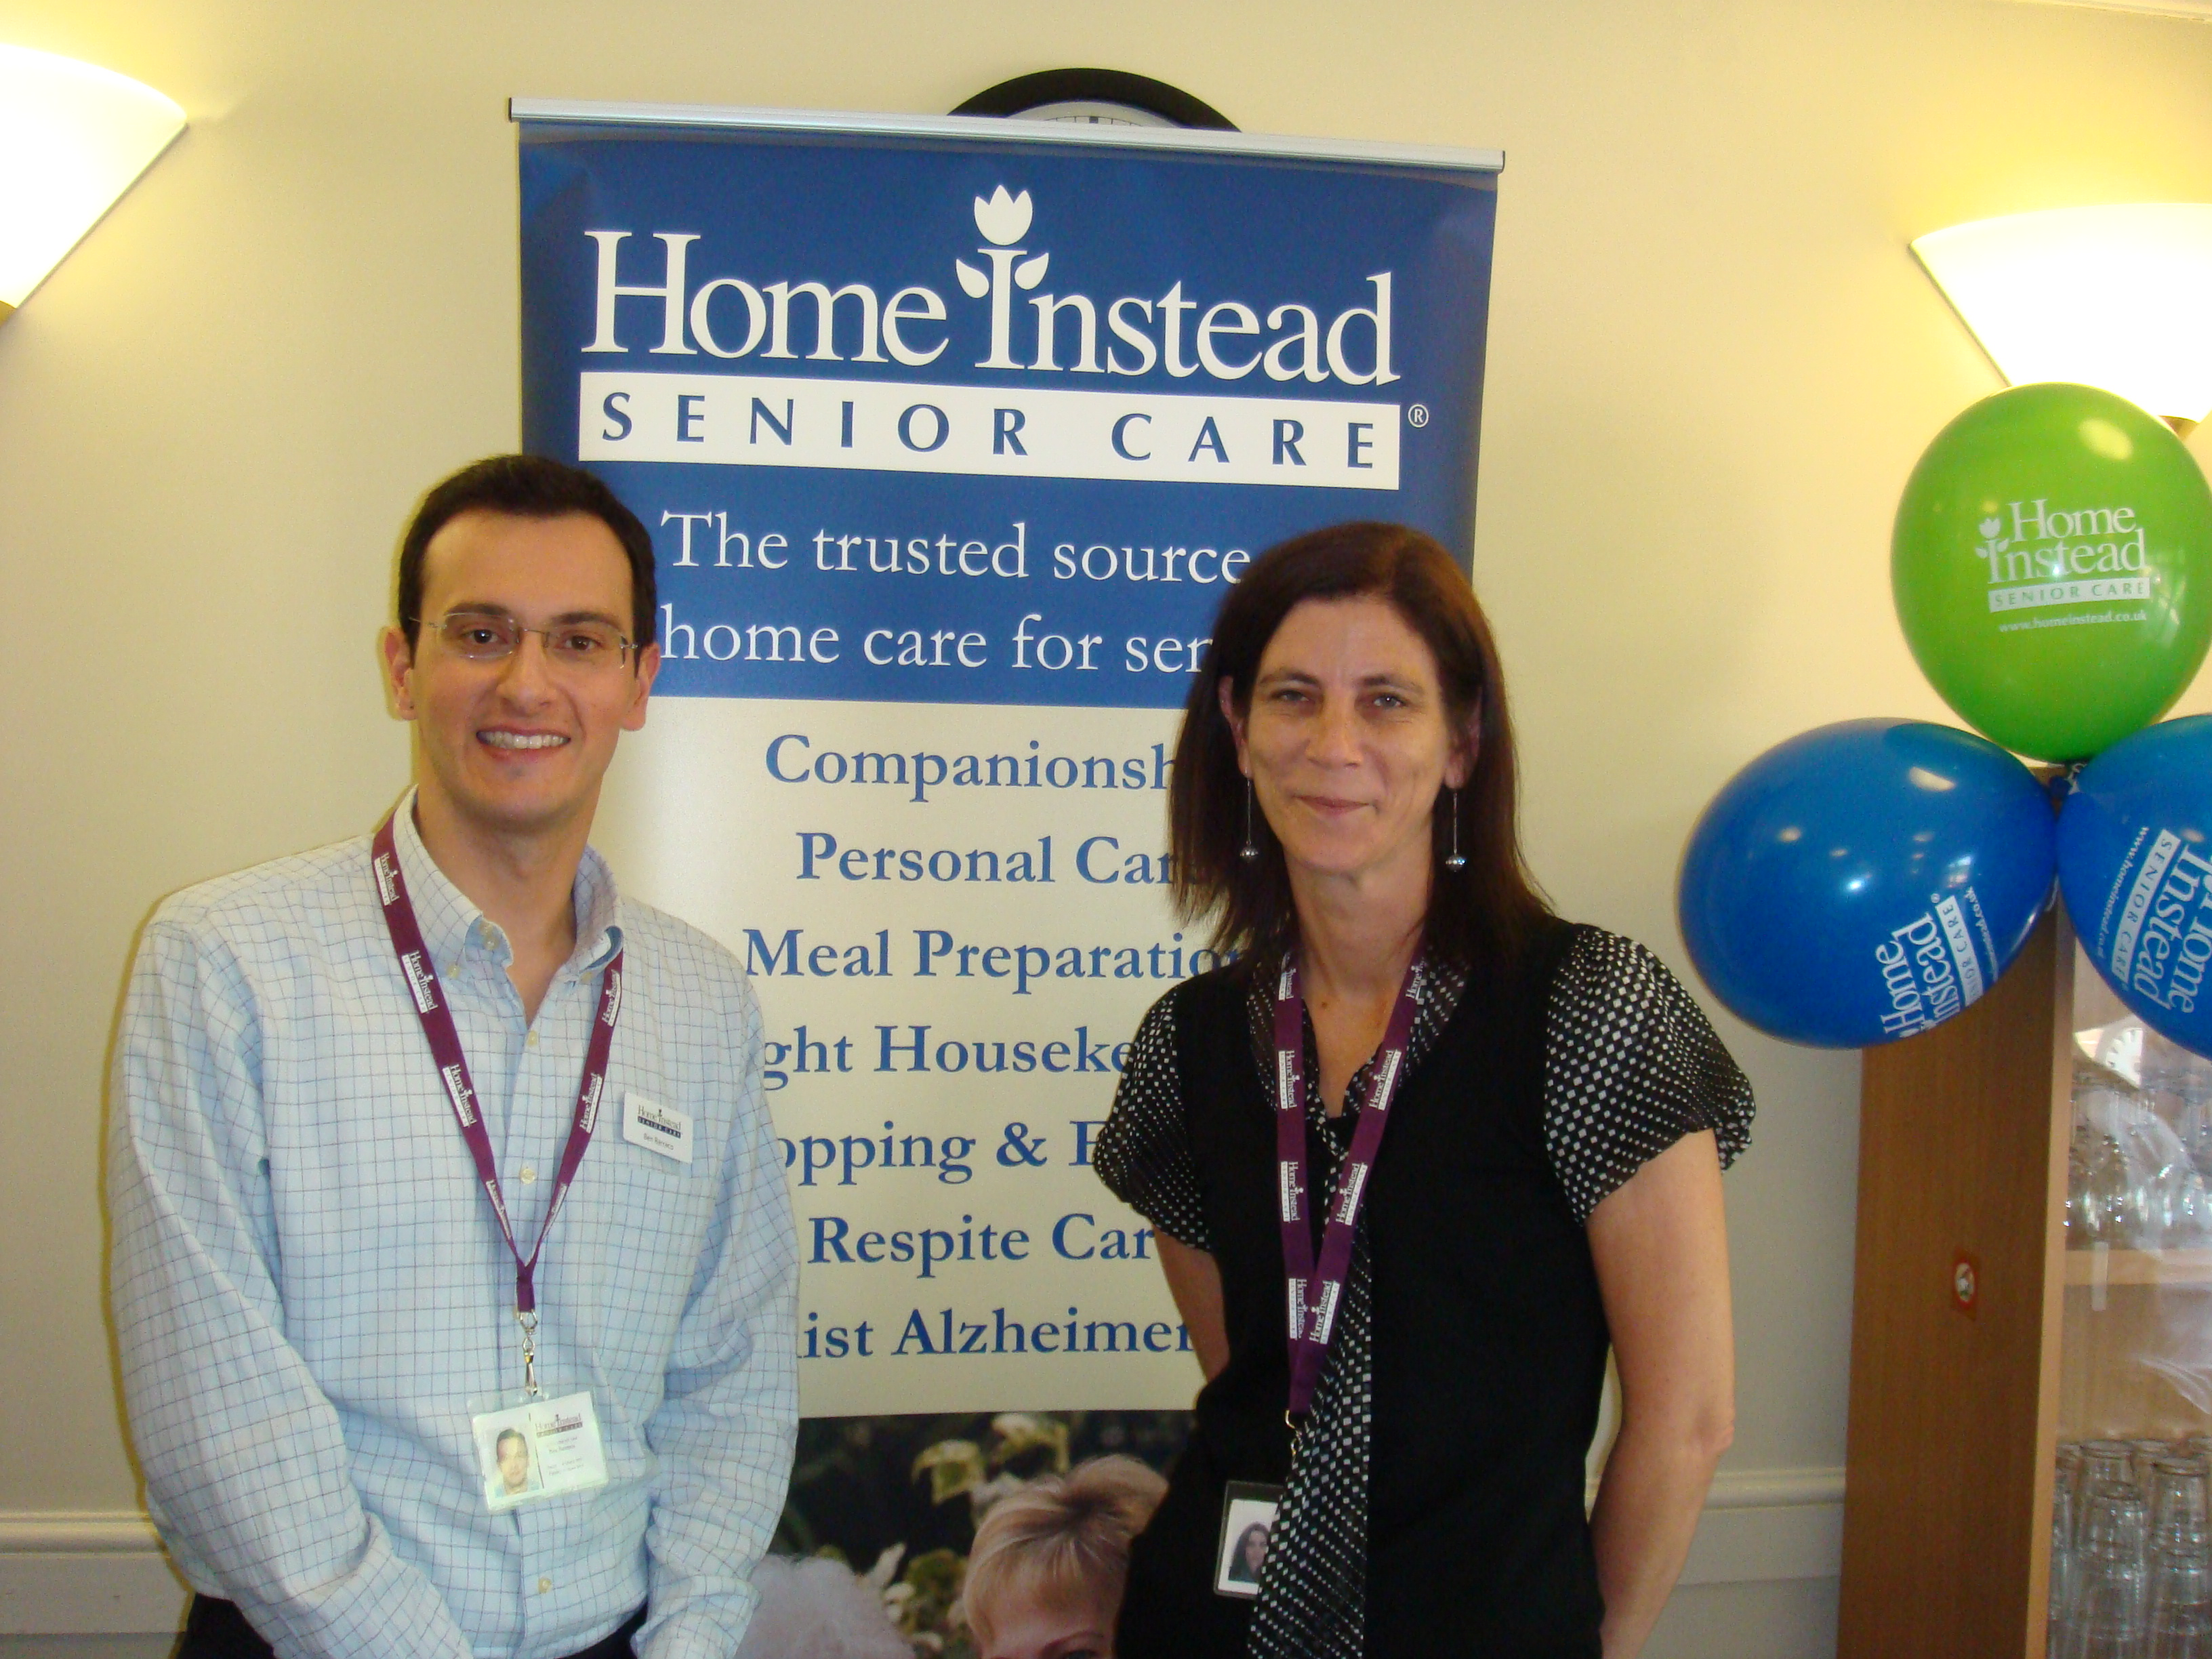 Home Instead Senior Care Waltham Forest owner Ben Barraco and Care Manager Mary Pearson at the World Alzheimer's Day celebration